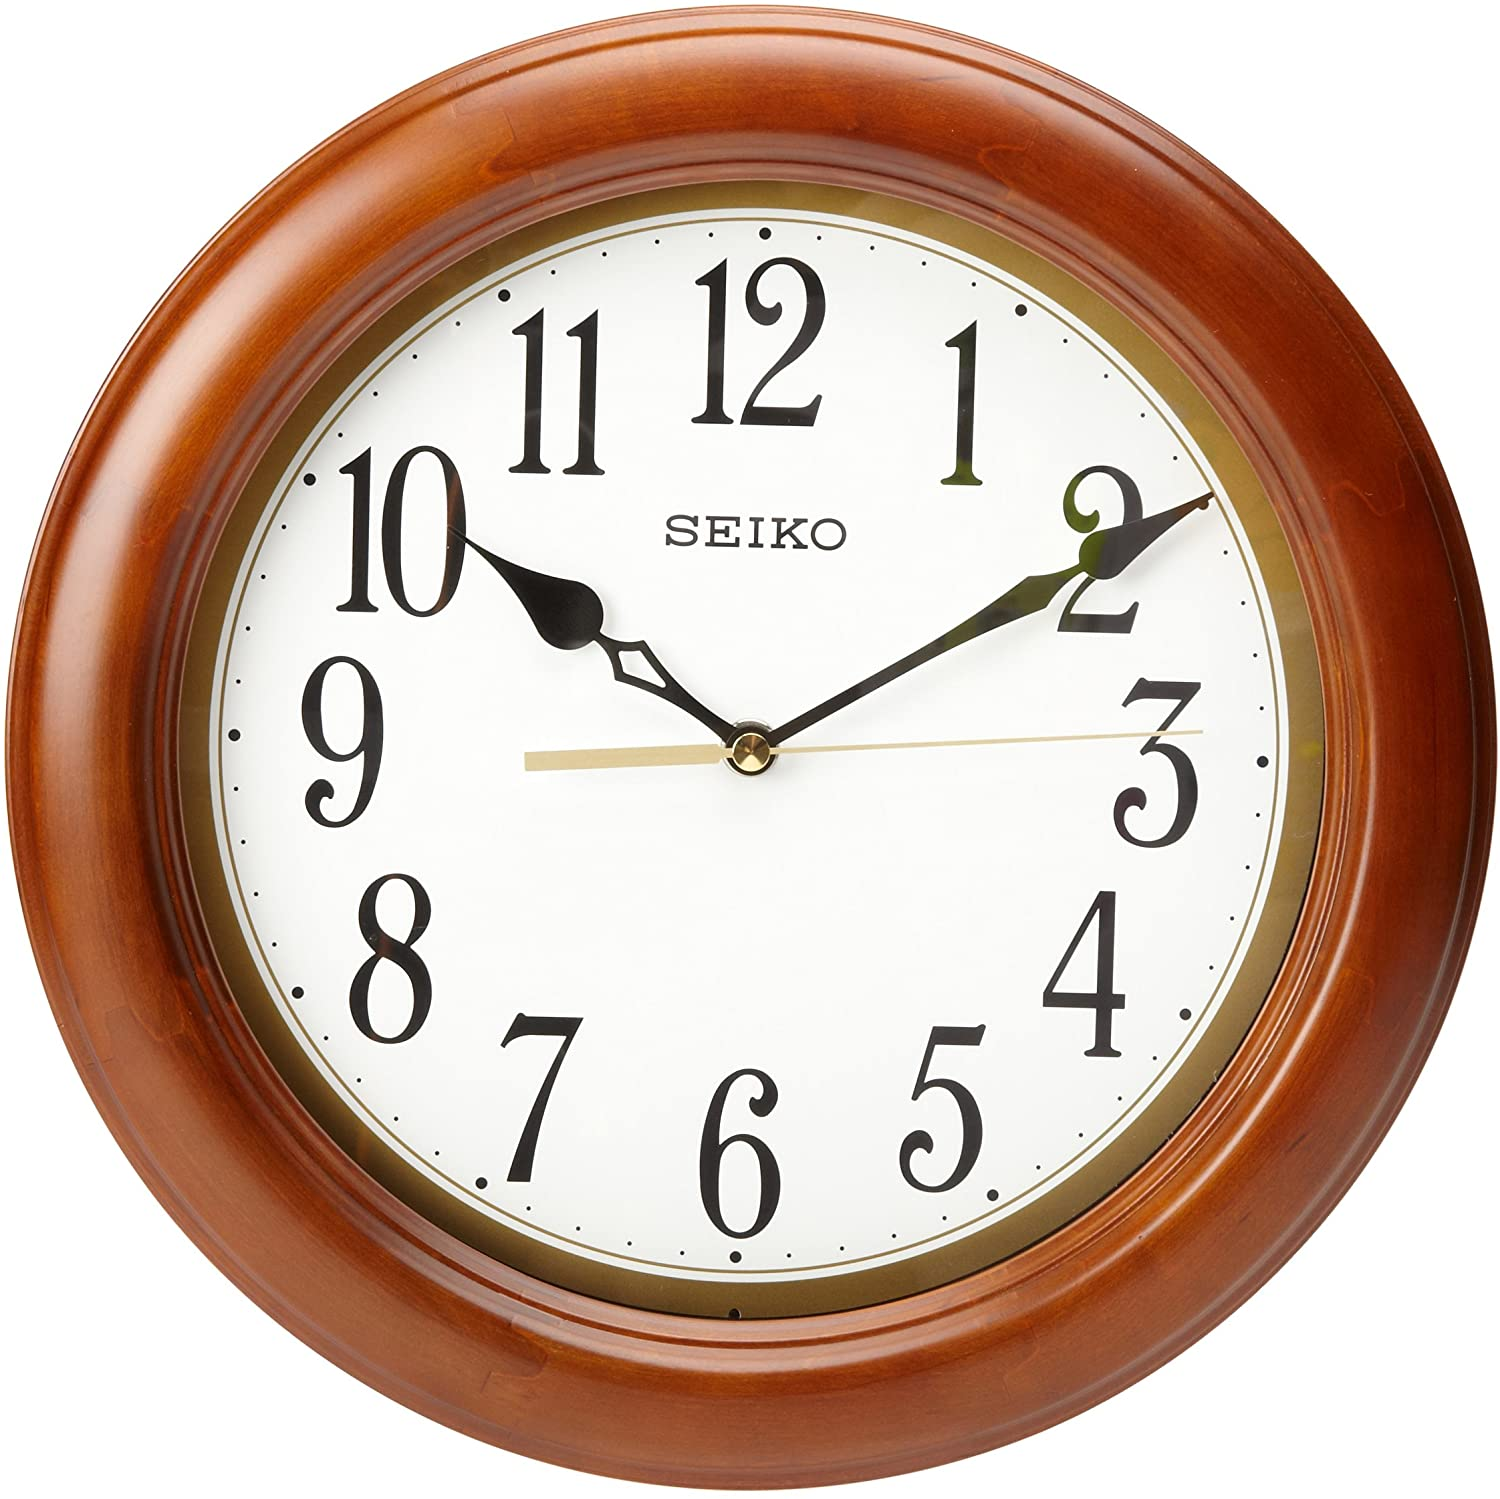 "Seiko 12"" Round Wood Classic Wall Clock"